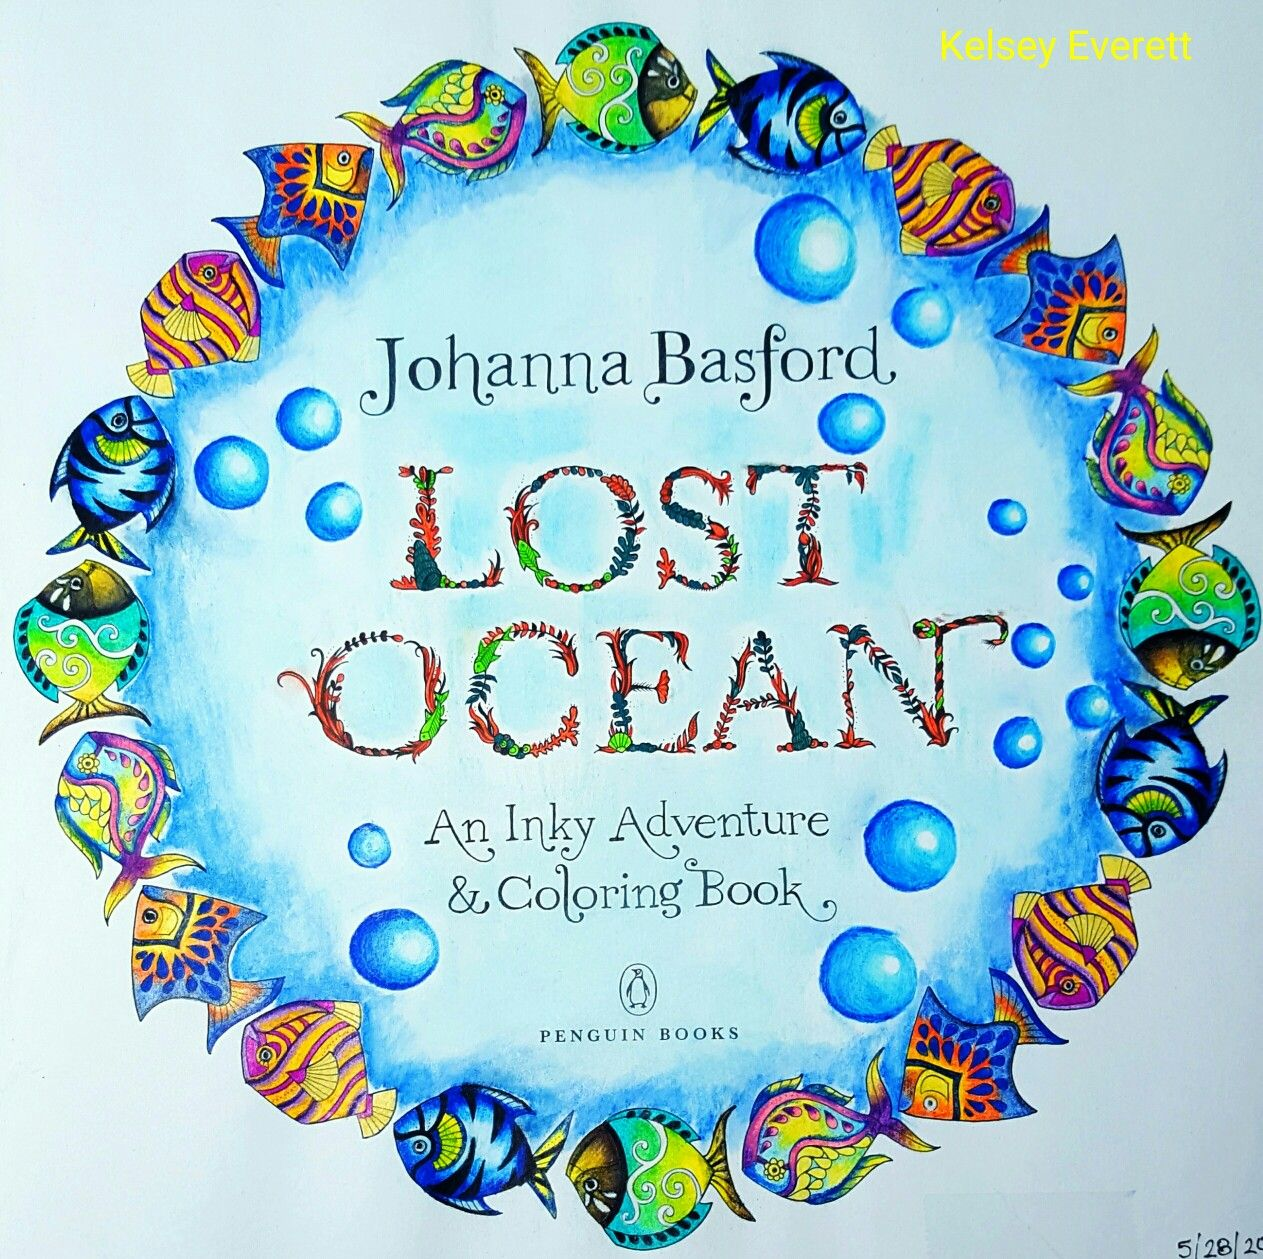 Johanna Basford S Lost Ocean Coloring Book Title Page Colored By Kelsey Everett Lost Ocean Coloring Book Johanna Basford Coloring Basford Coloring Book